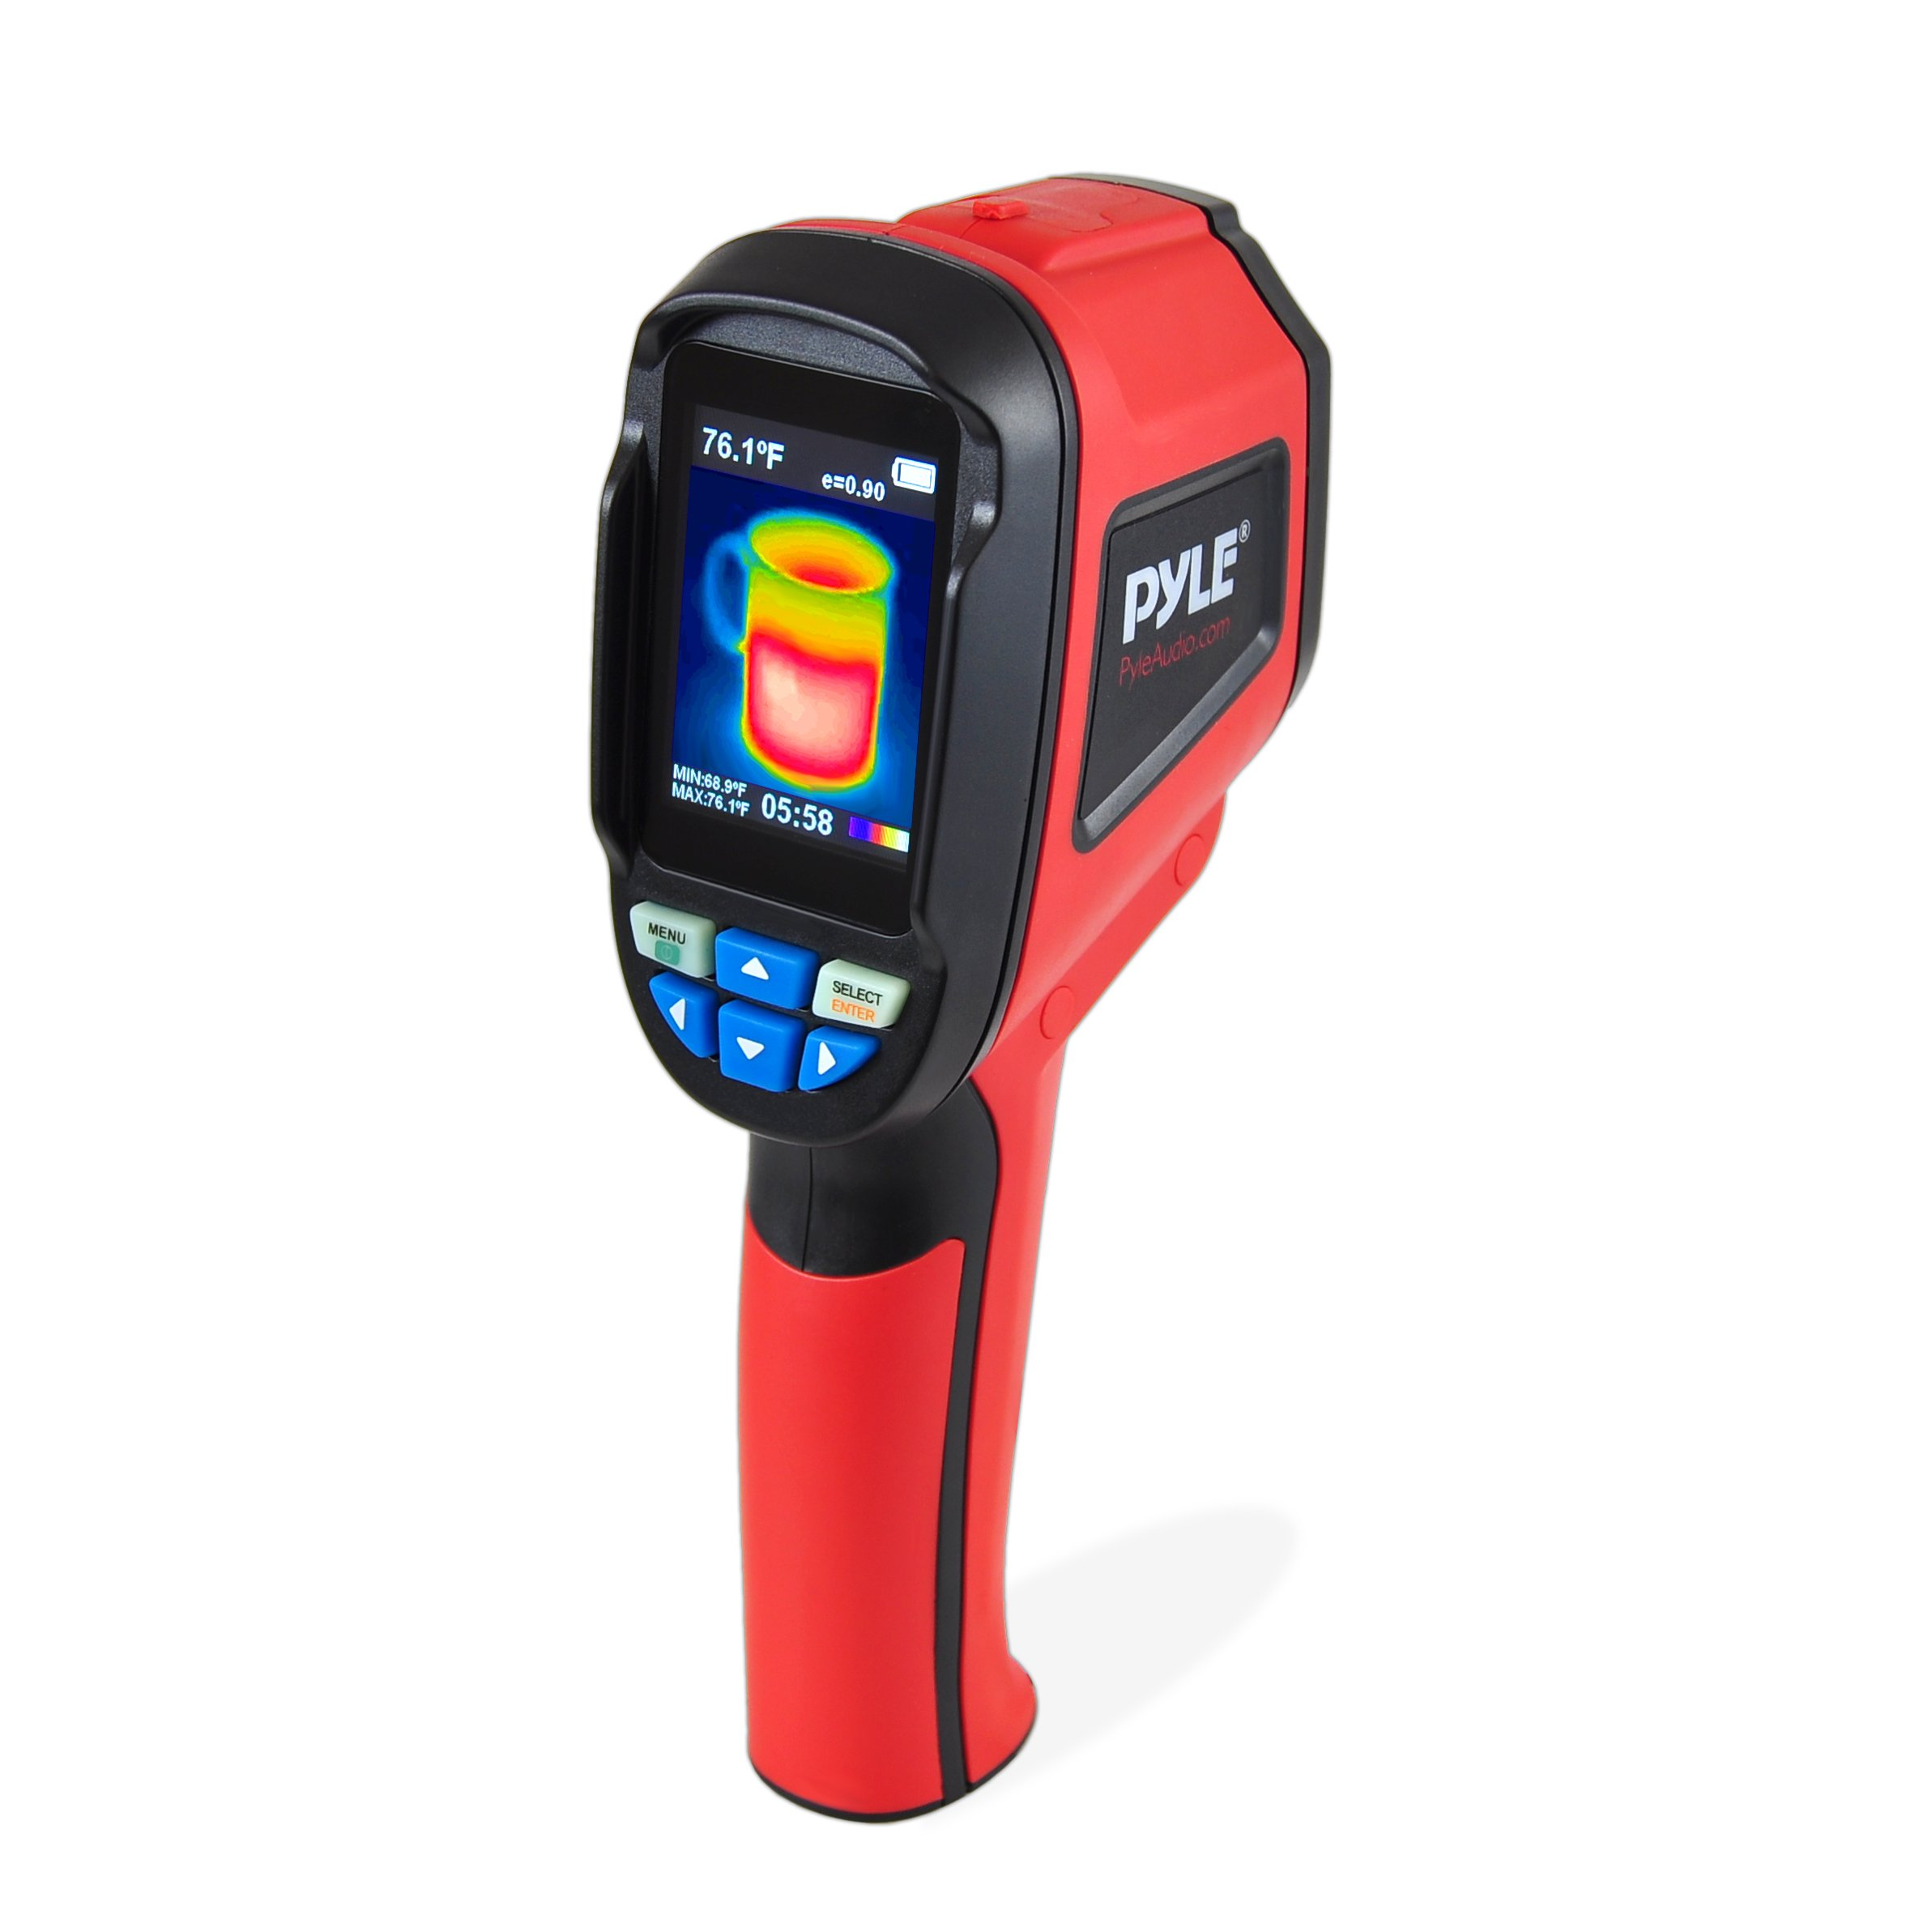 Pyle Infrared IR Thermal Imaging Camera Digital Heat Sensor Spotter & Visible Light Camera with  Temperature Measurement : -4°F ~ 572°F, Display Screen household heating cooling .Check food safety